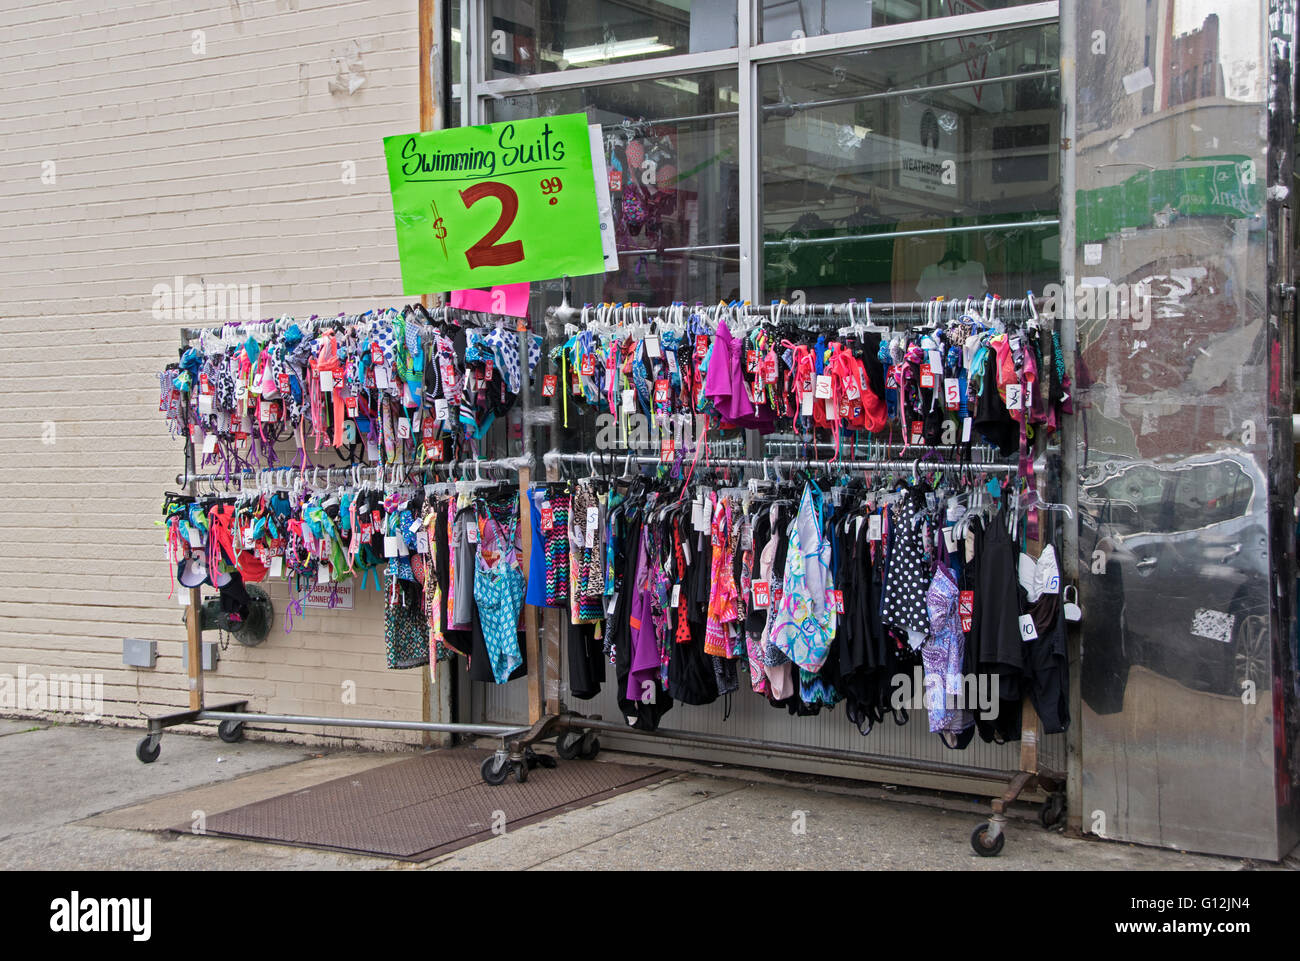 5/2016. Extremely inexpensive swim suits for sale on Brighton Beach Avenue in South Brooklyn, New York City - Stock Image